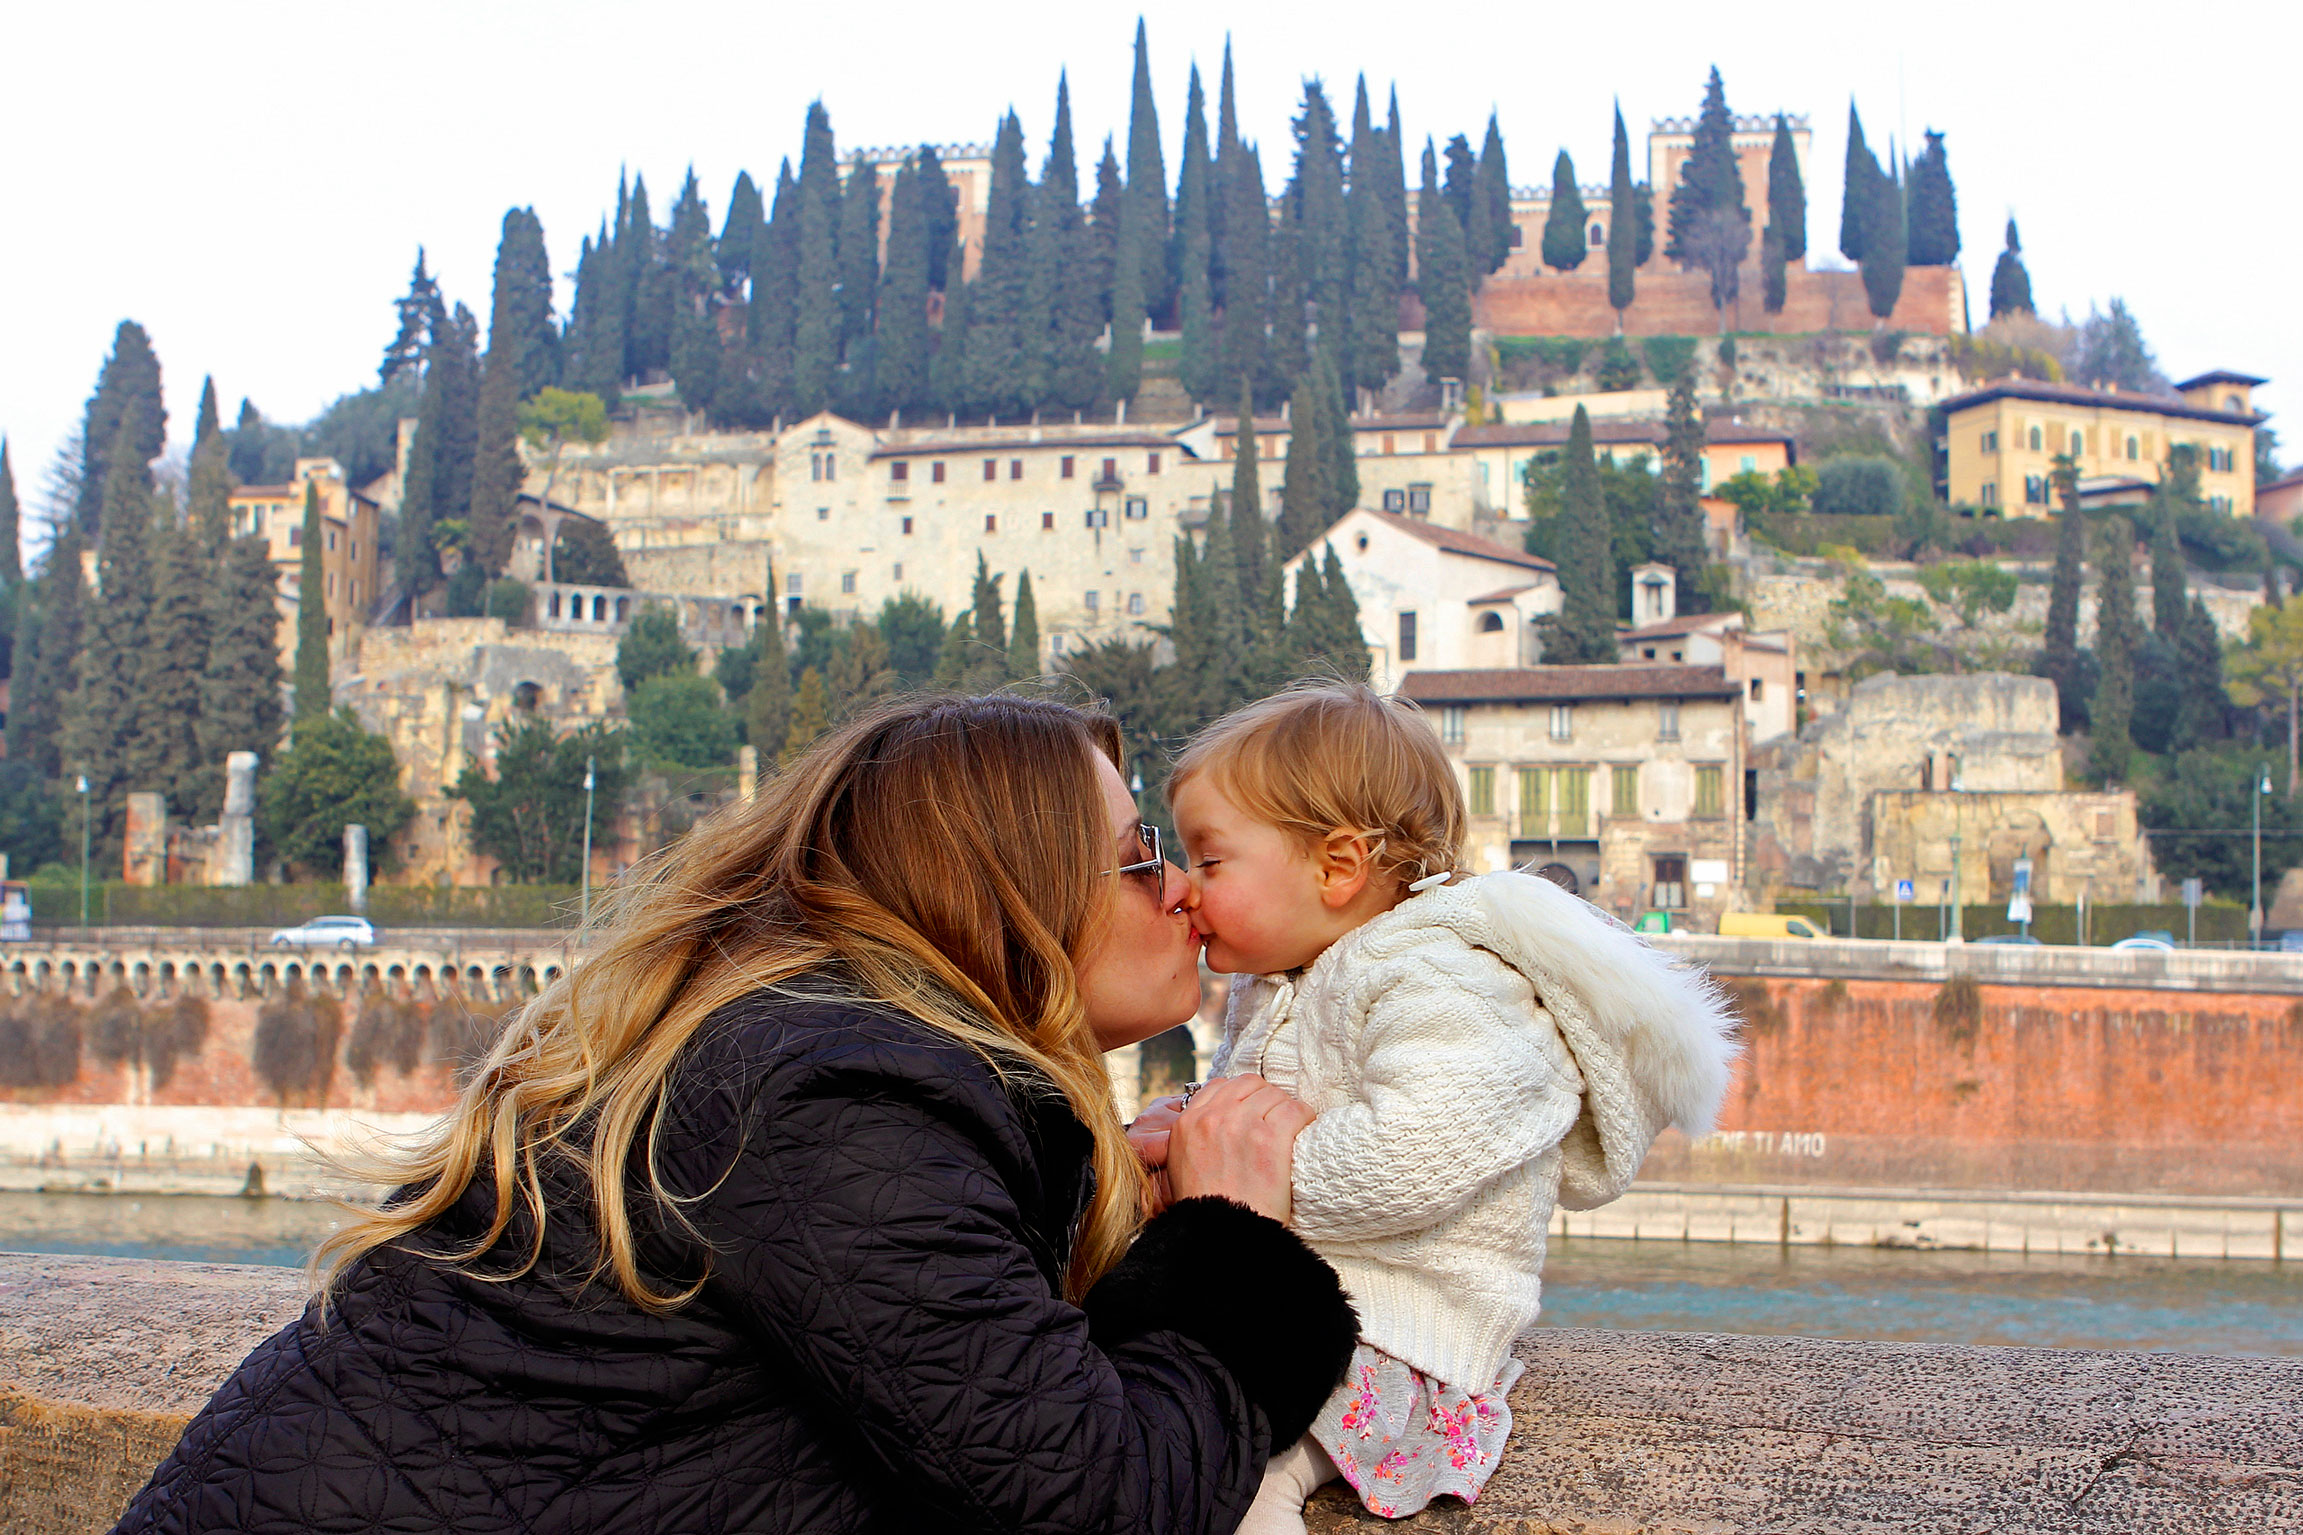 A Little Peck of Love in Verona